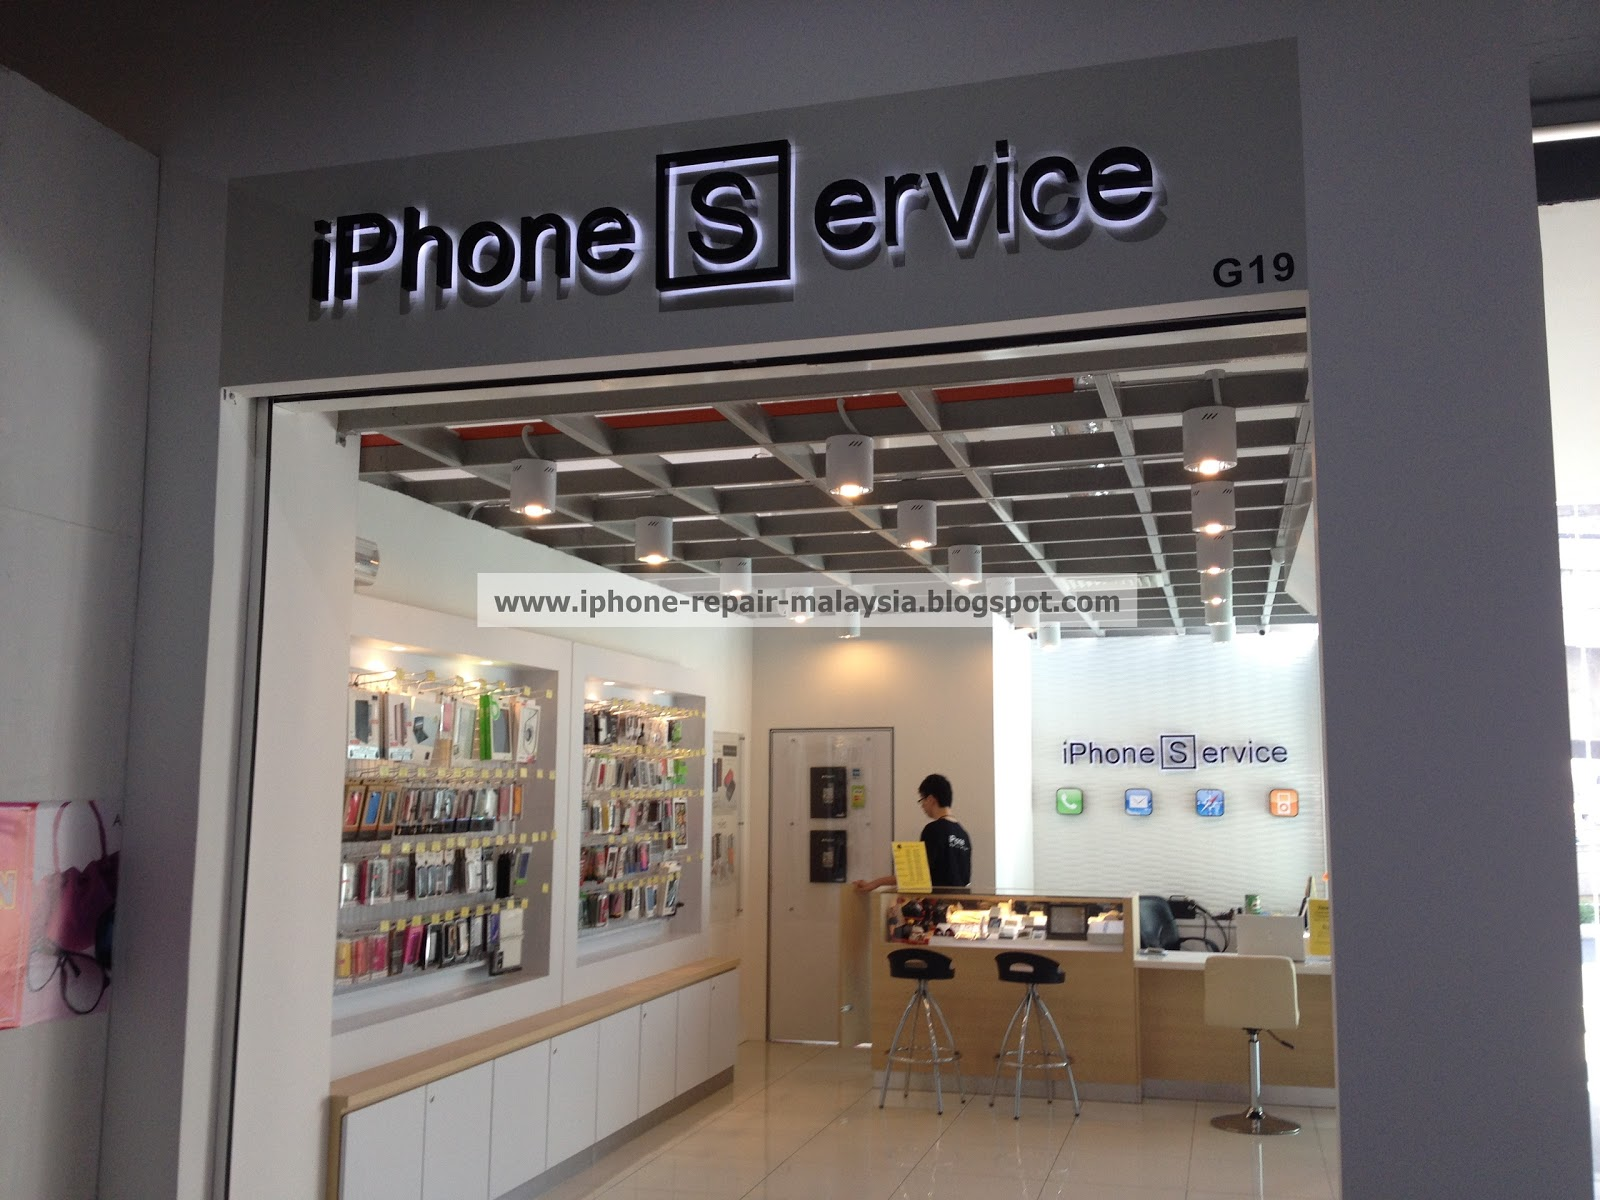 iPhone Repair Service in Malaysia: Contact and Location